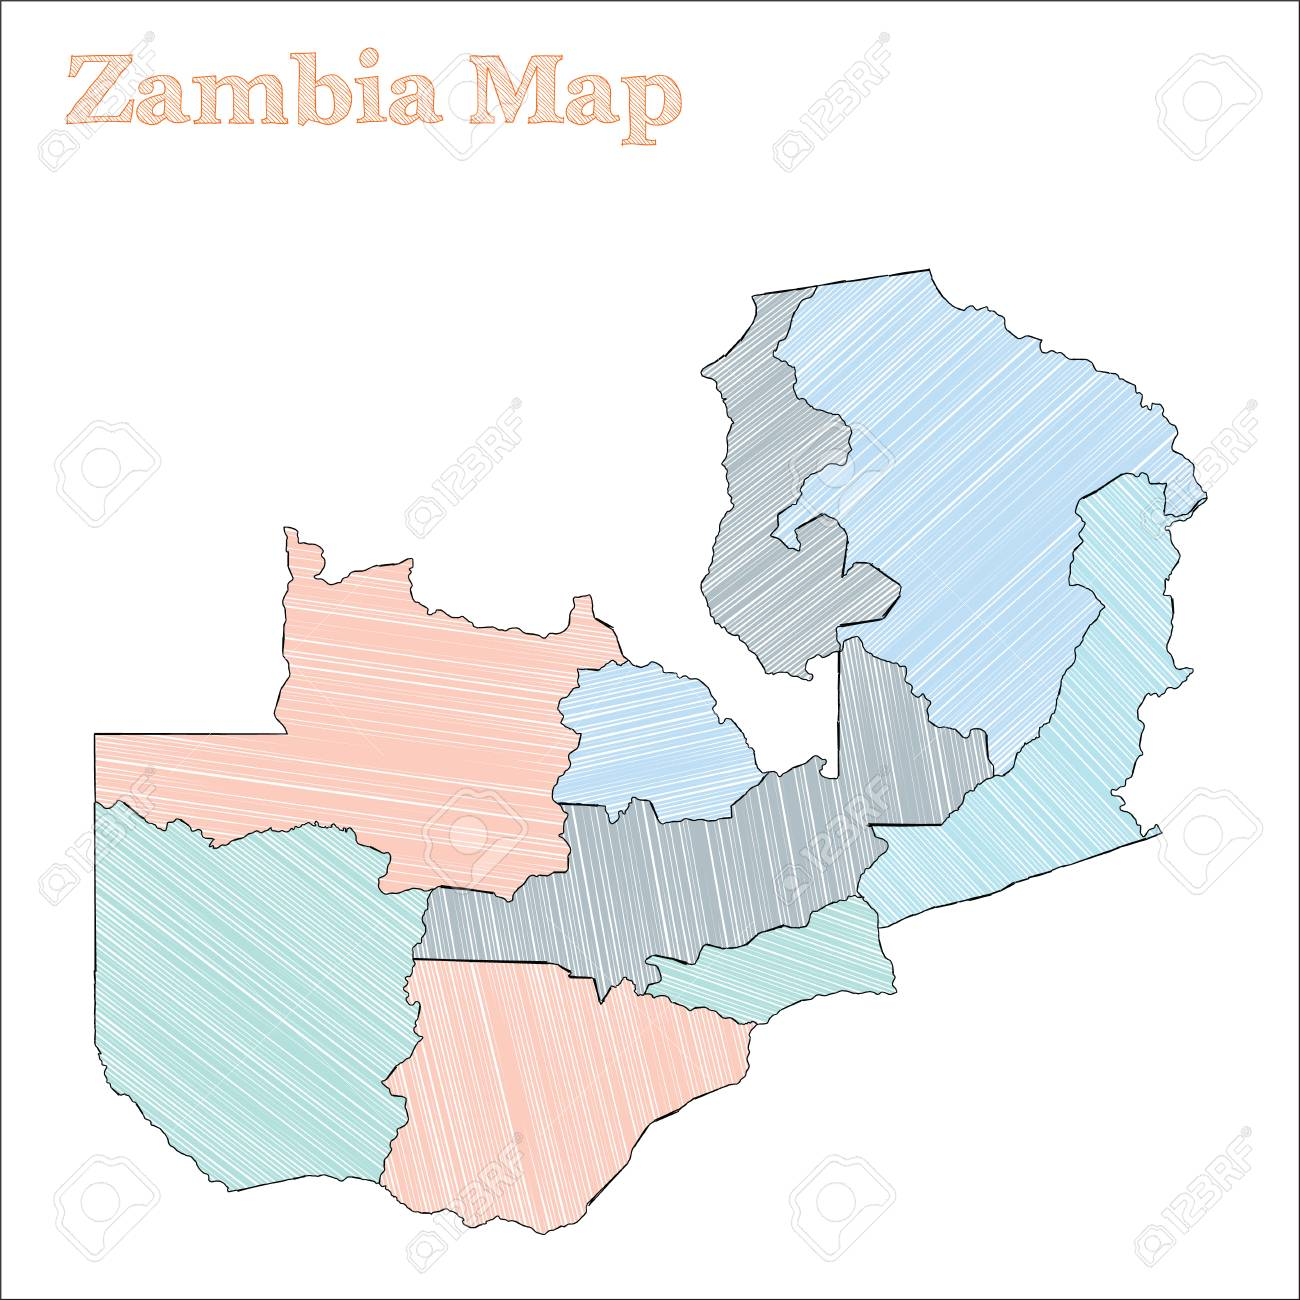 Zambia hand-drawn map. Colourful sketchy country outline. Fantastic..